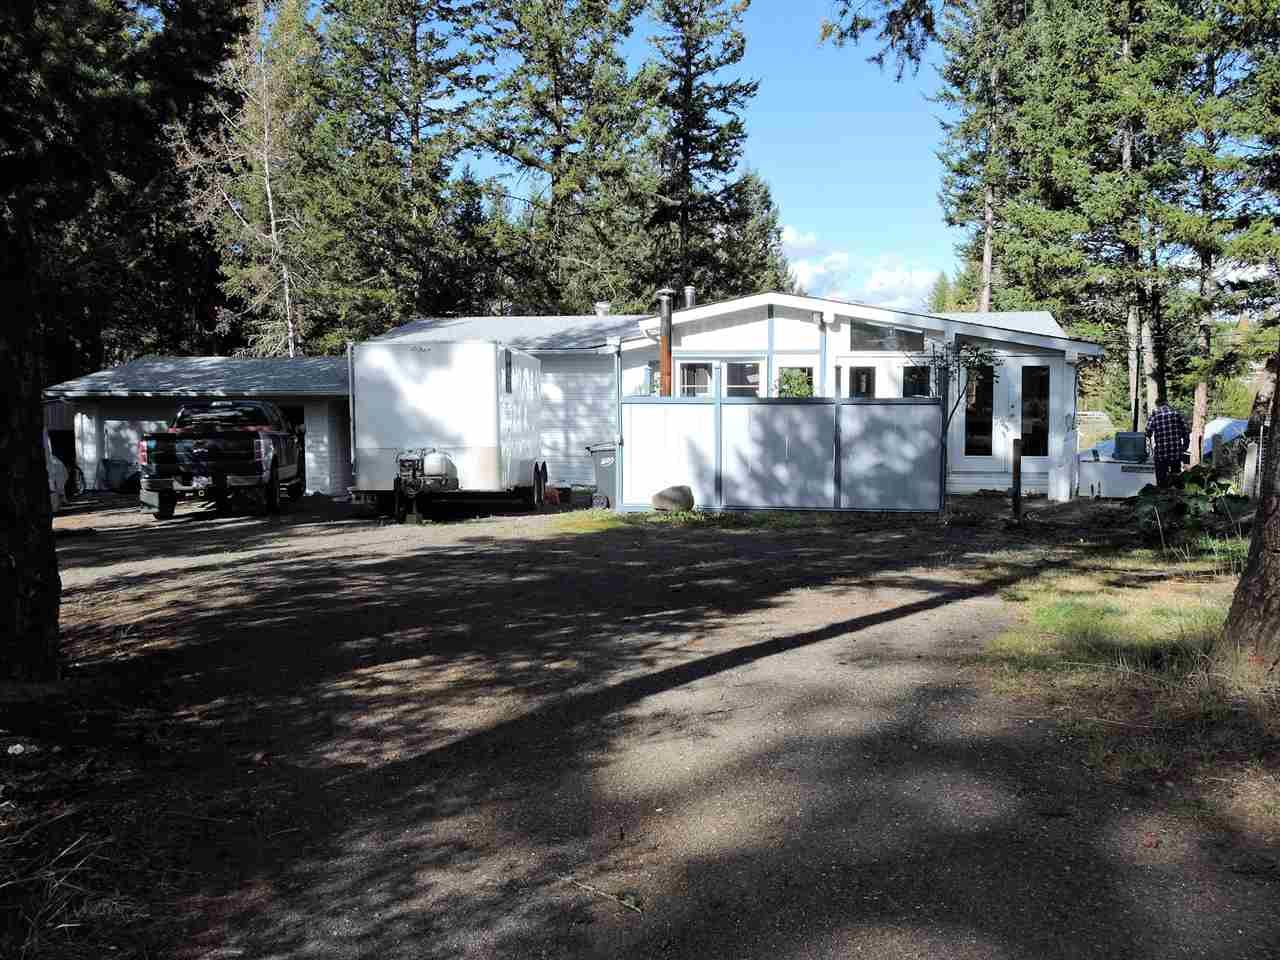 """Main Photo: 5447 DONSLEEQUA Court in 108 Mile Ranch: 108 Ranch Manufactured Home for sale in """"108 RANCH RESORT"""" (100 Mile House (Zone 10))  : MLS®# R2475152"""